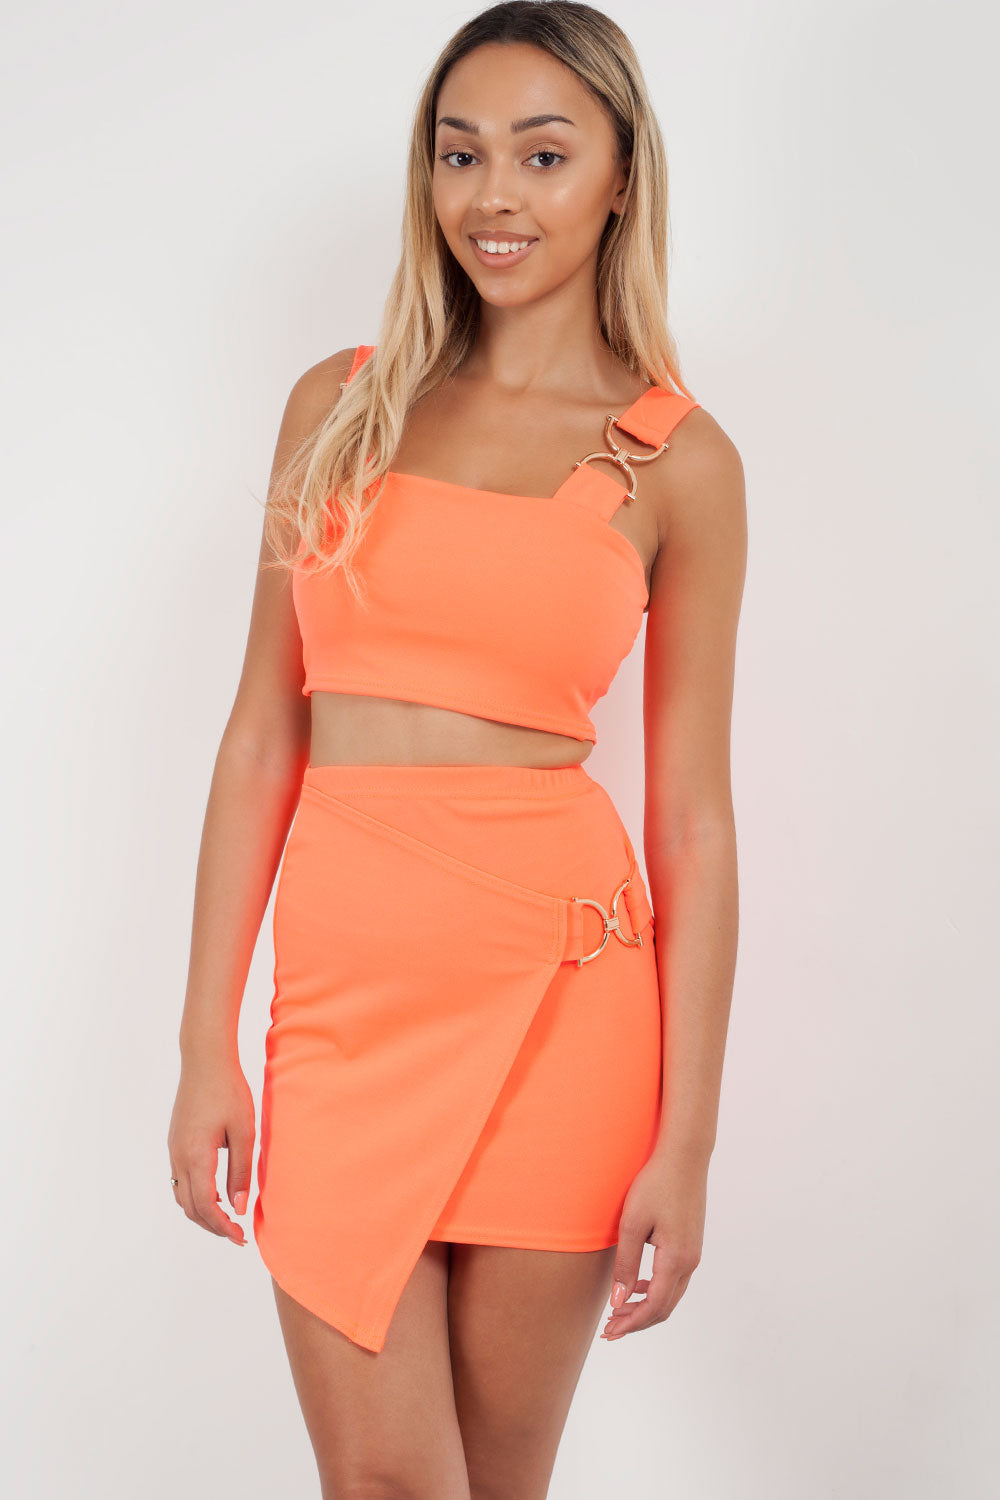 neon orange mini skirt and crop top set